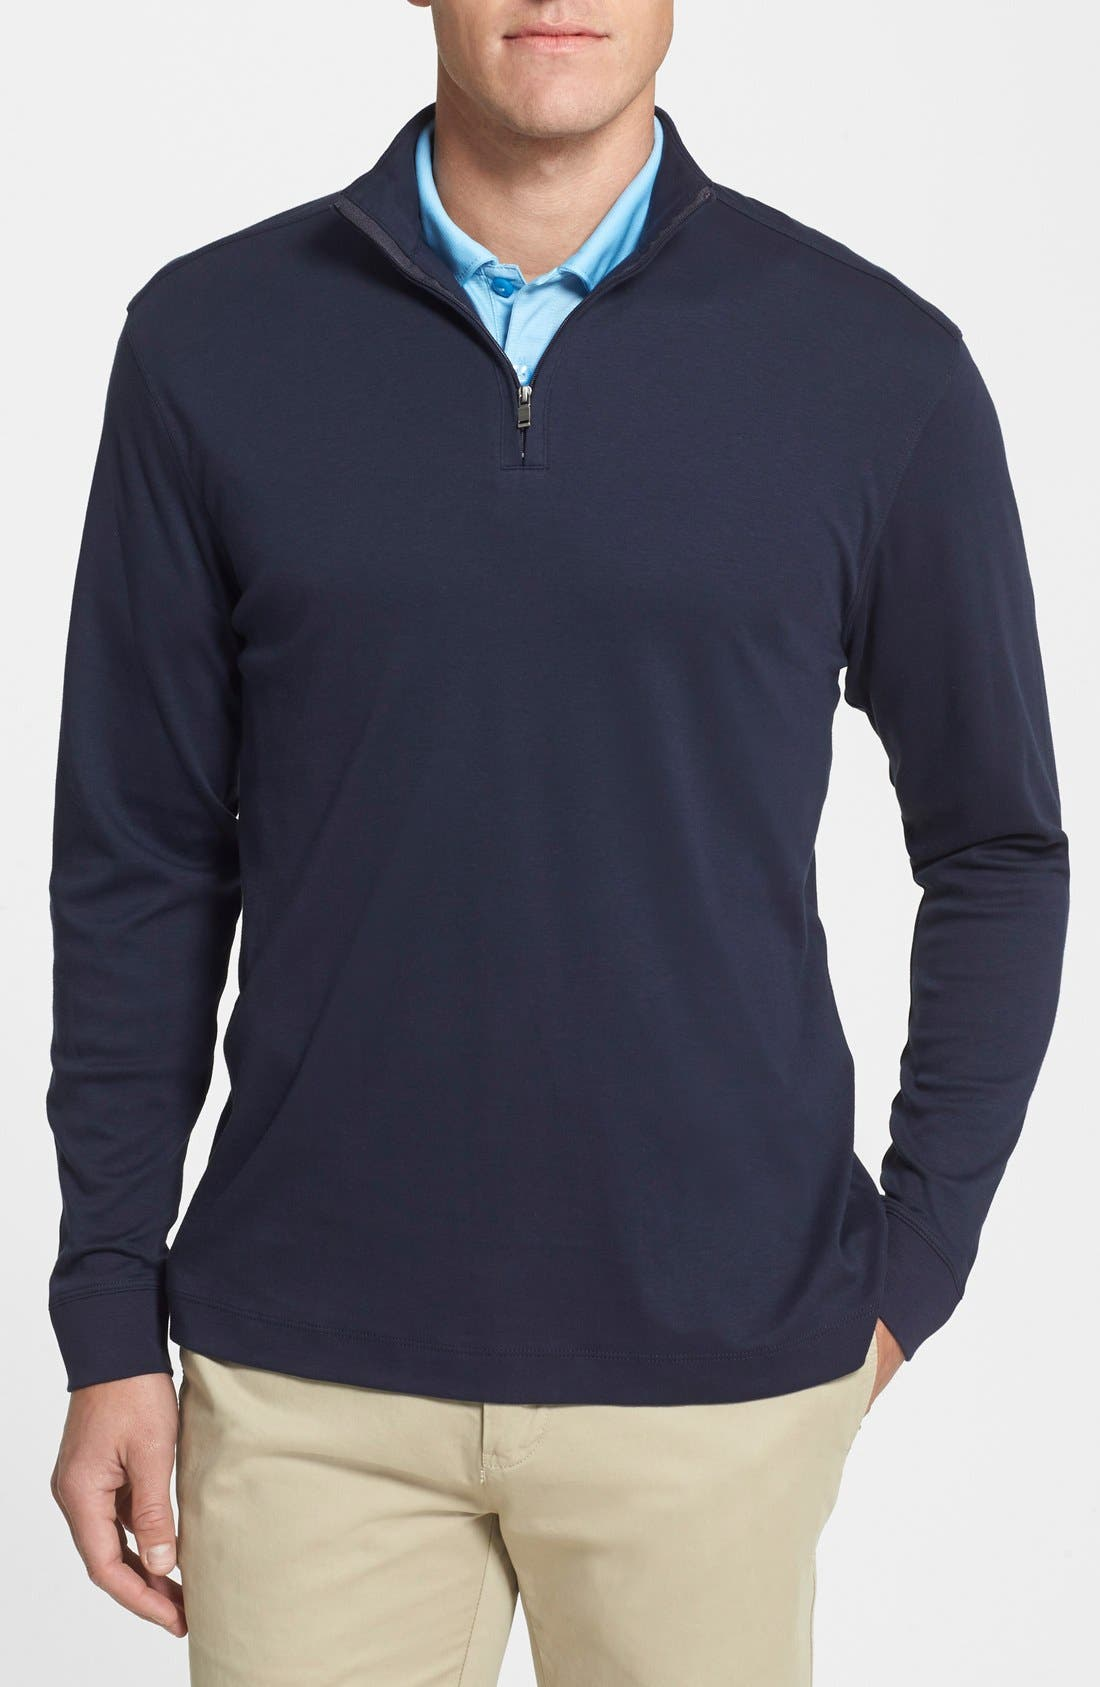 Belfair Quarter Zip Pullover,                             Main thumbnail 1, color,                             493